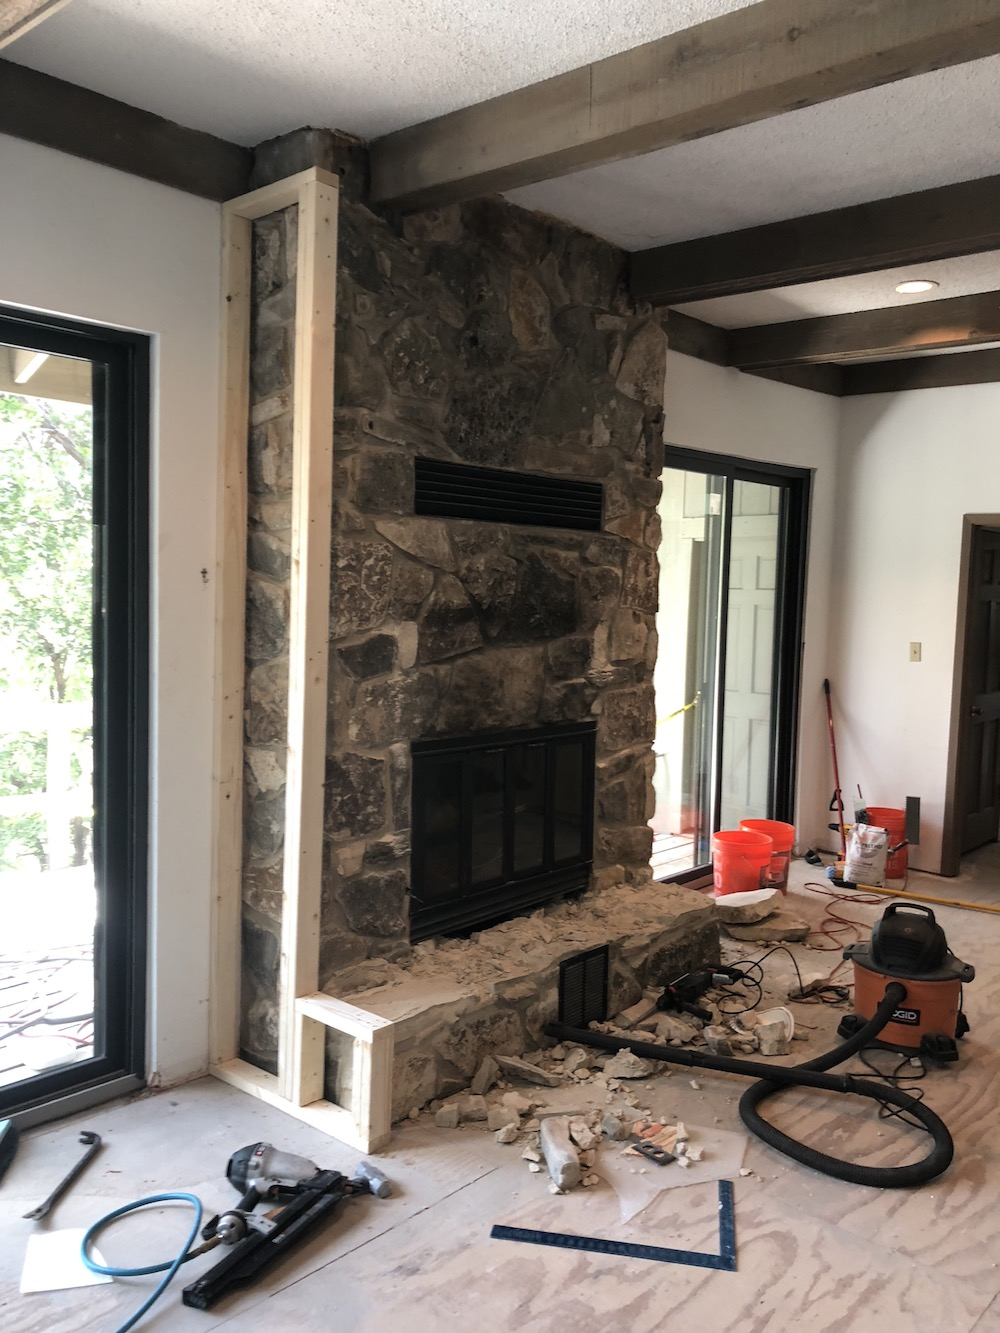 Covering the Fireplace